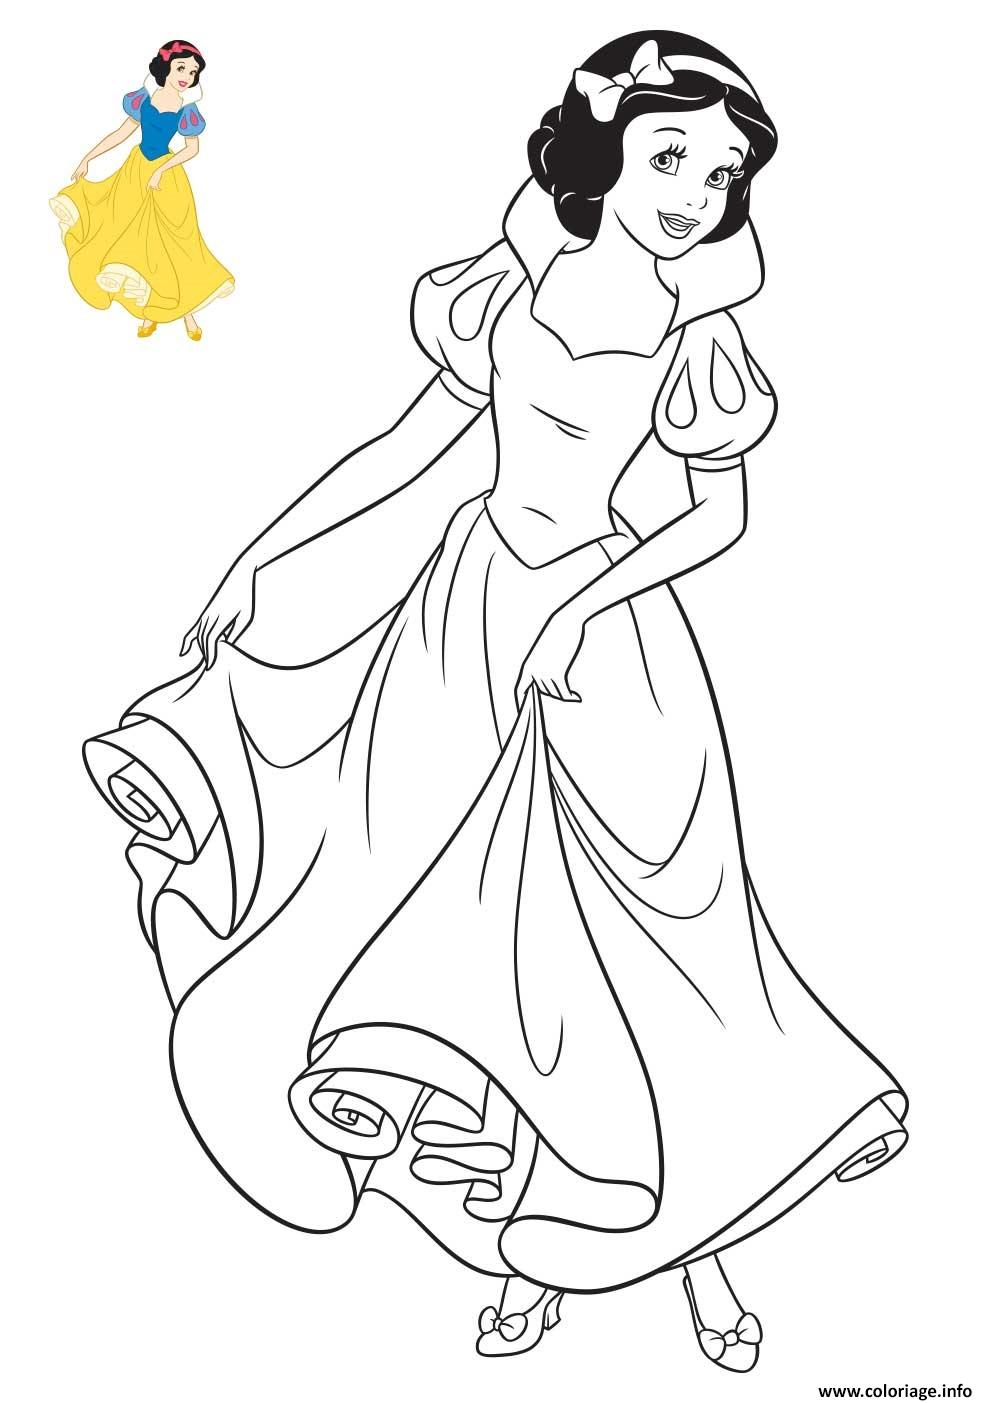 Coloriage princesse disney blanche neige - Colriage princesse ...